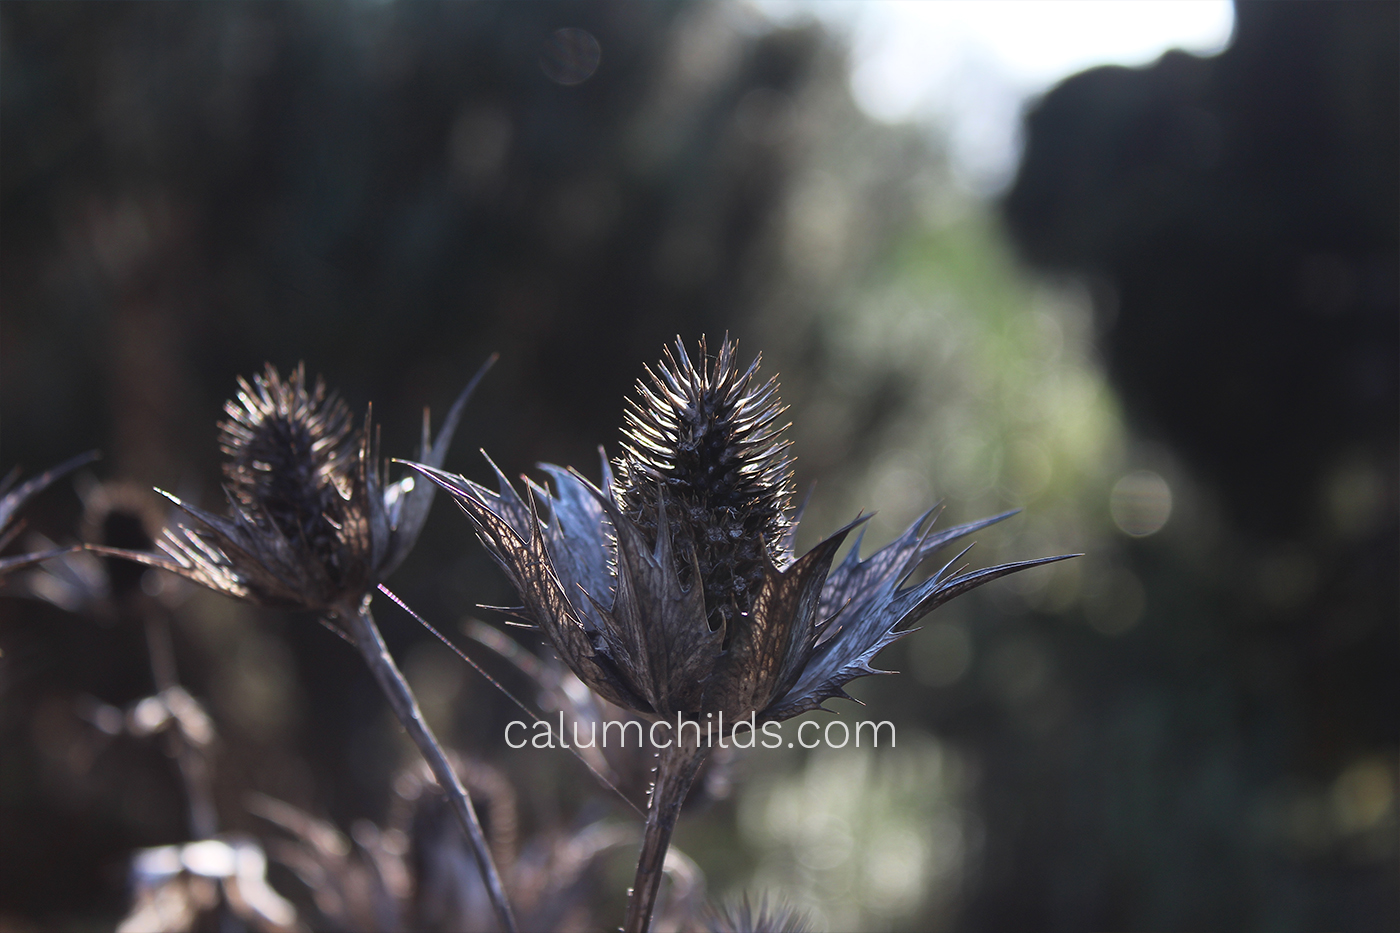 A seed head of a flower stands as a powerful and interesting shape in the winter sunlight.